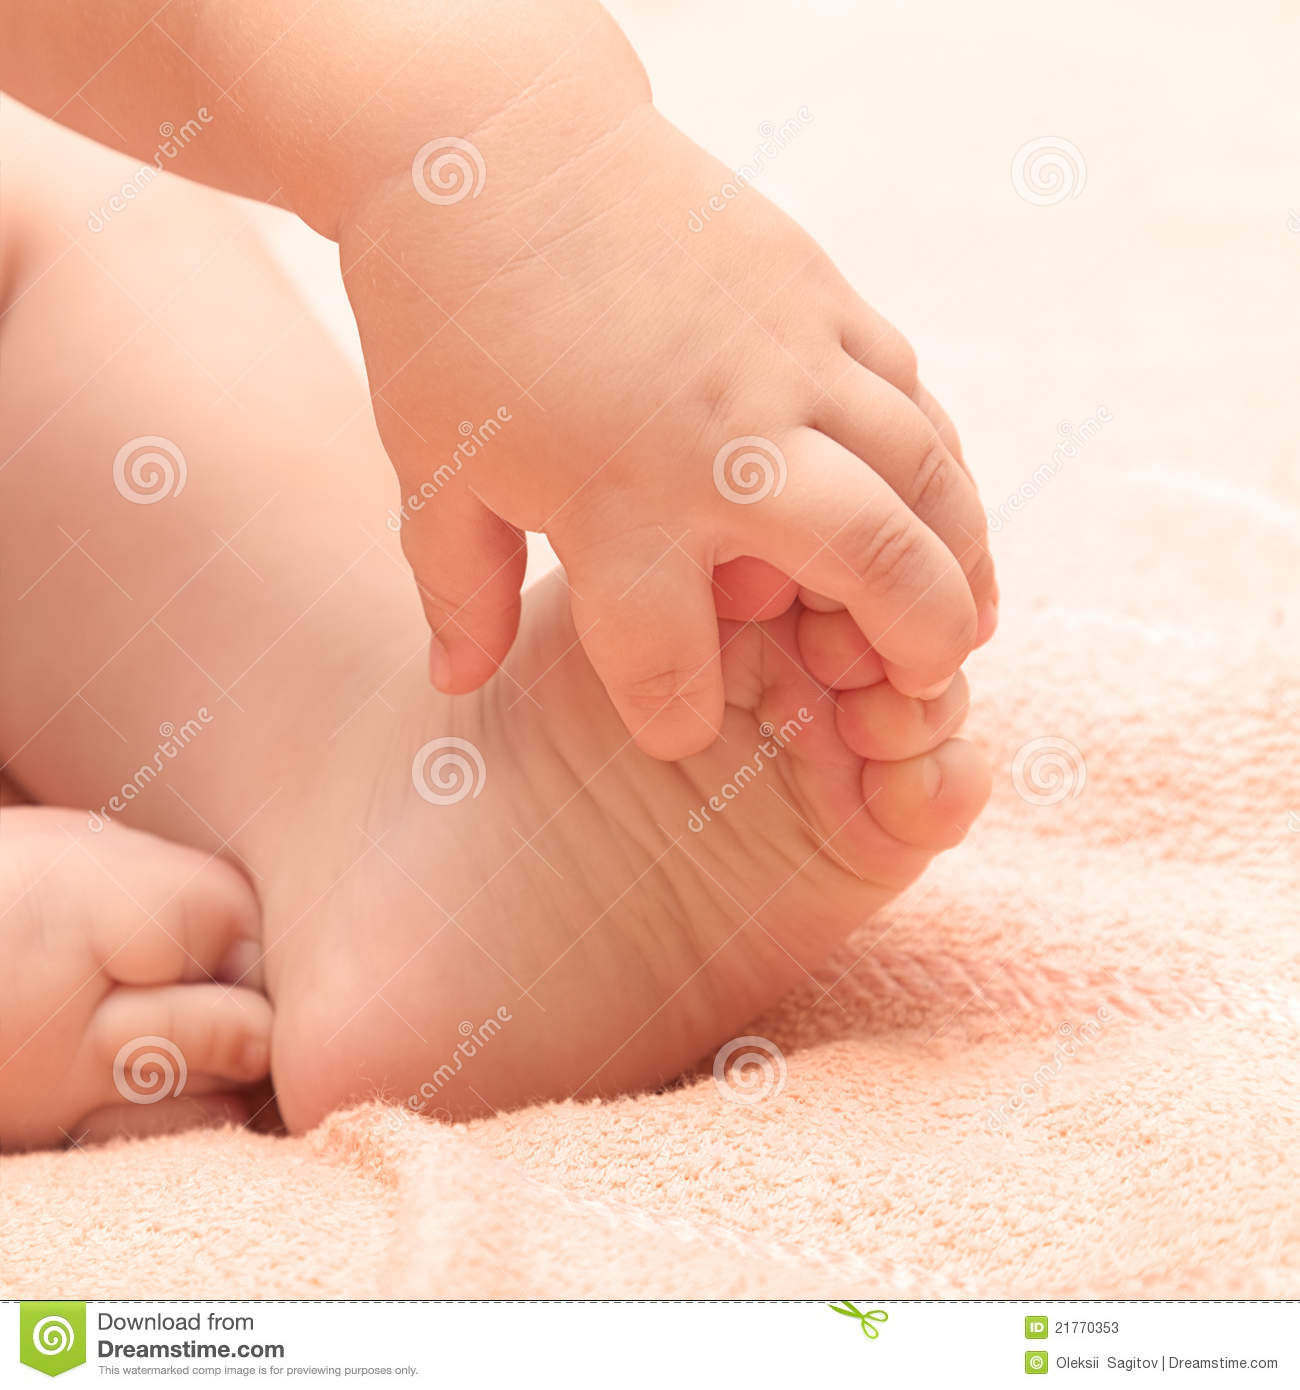 Baby Hands And Feet Stock Photos - Image: 21770353